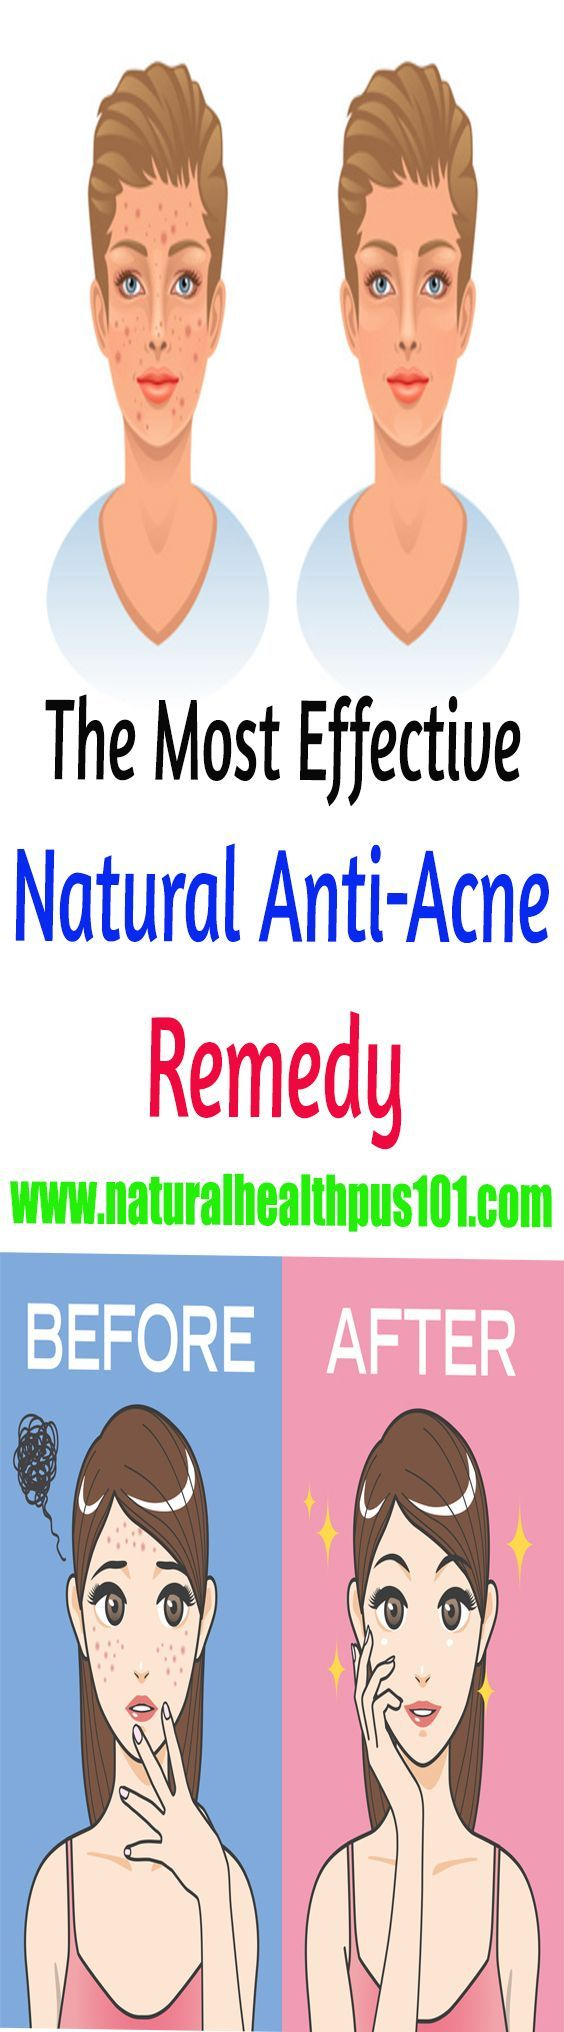 pimple treatment for oily skin, how to cure pimples in one day, home remedies for pimples marks, pimples on face treatment at home in hindi, how to cure acne naturally in 3 days, how to remove pimples naturally, best home remedy for acne overnight, how to remove pimples in one day,